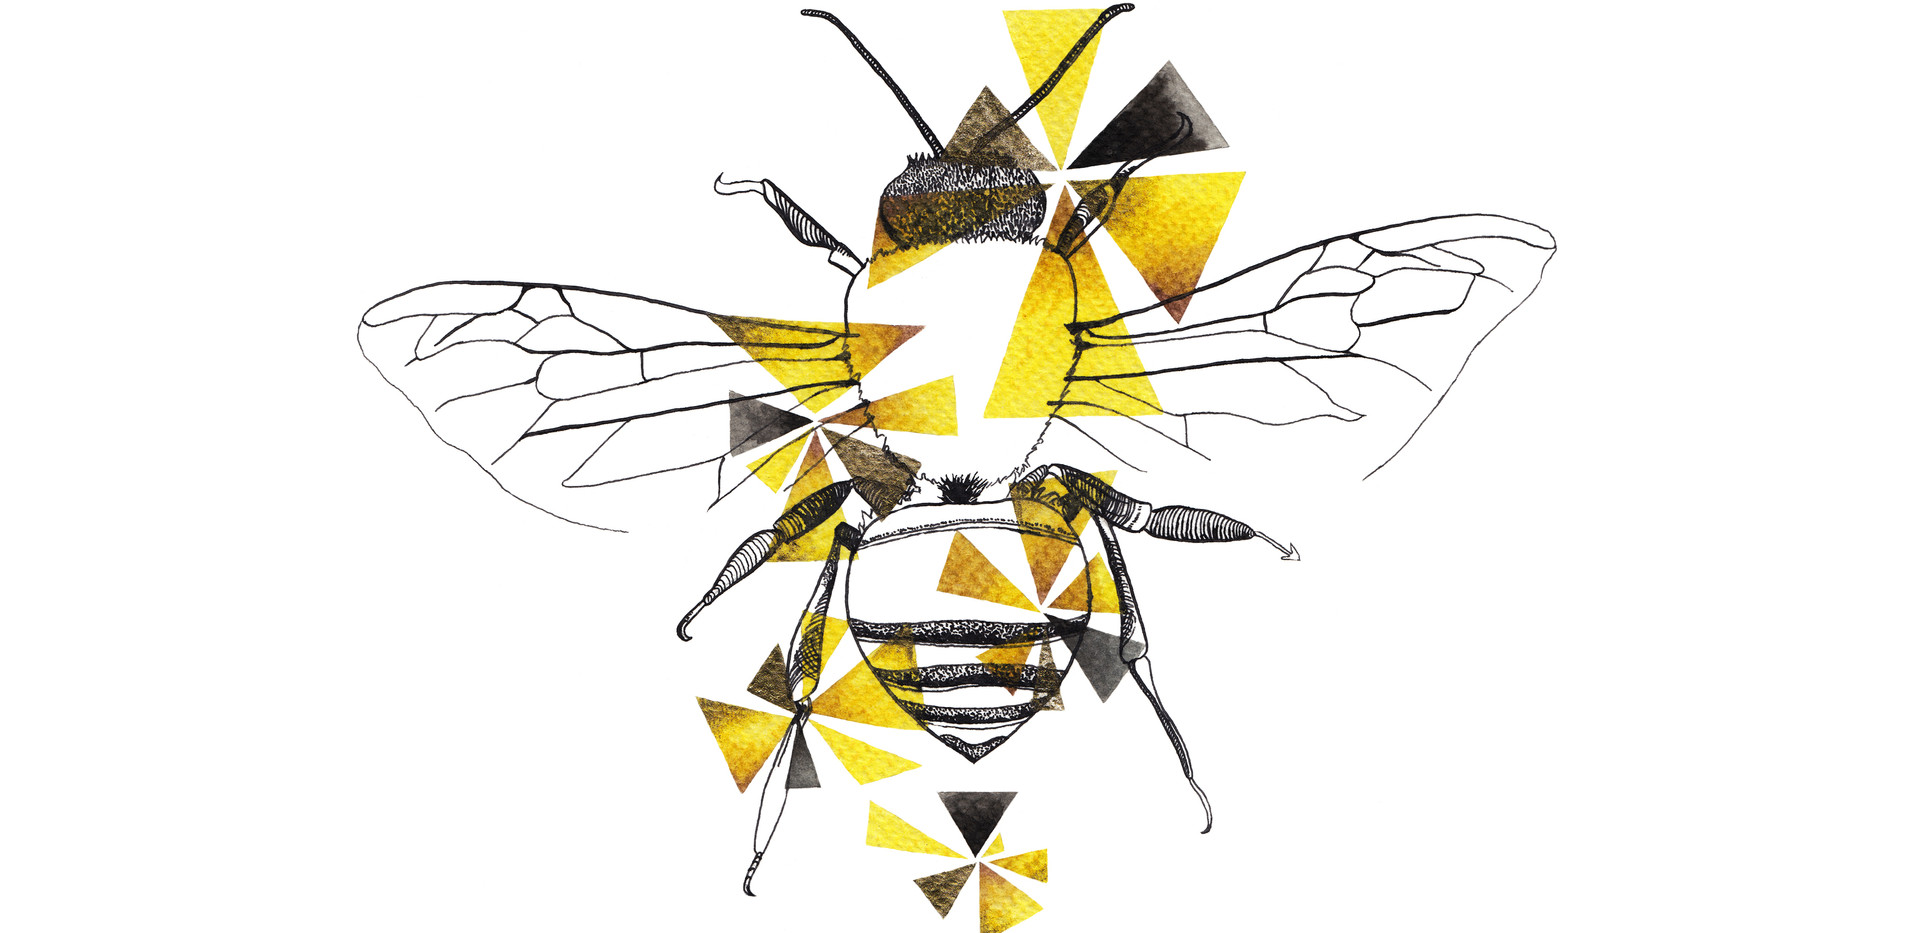 Geometric Honeybee Drawing